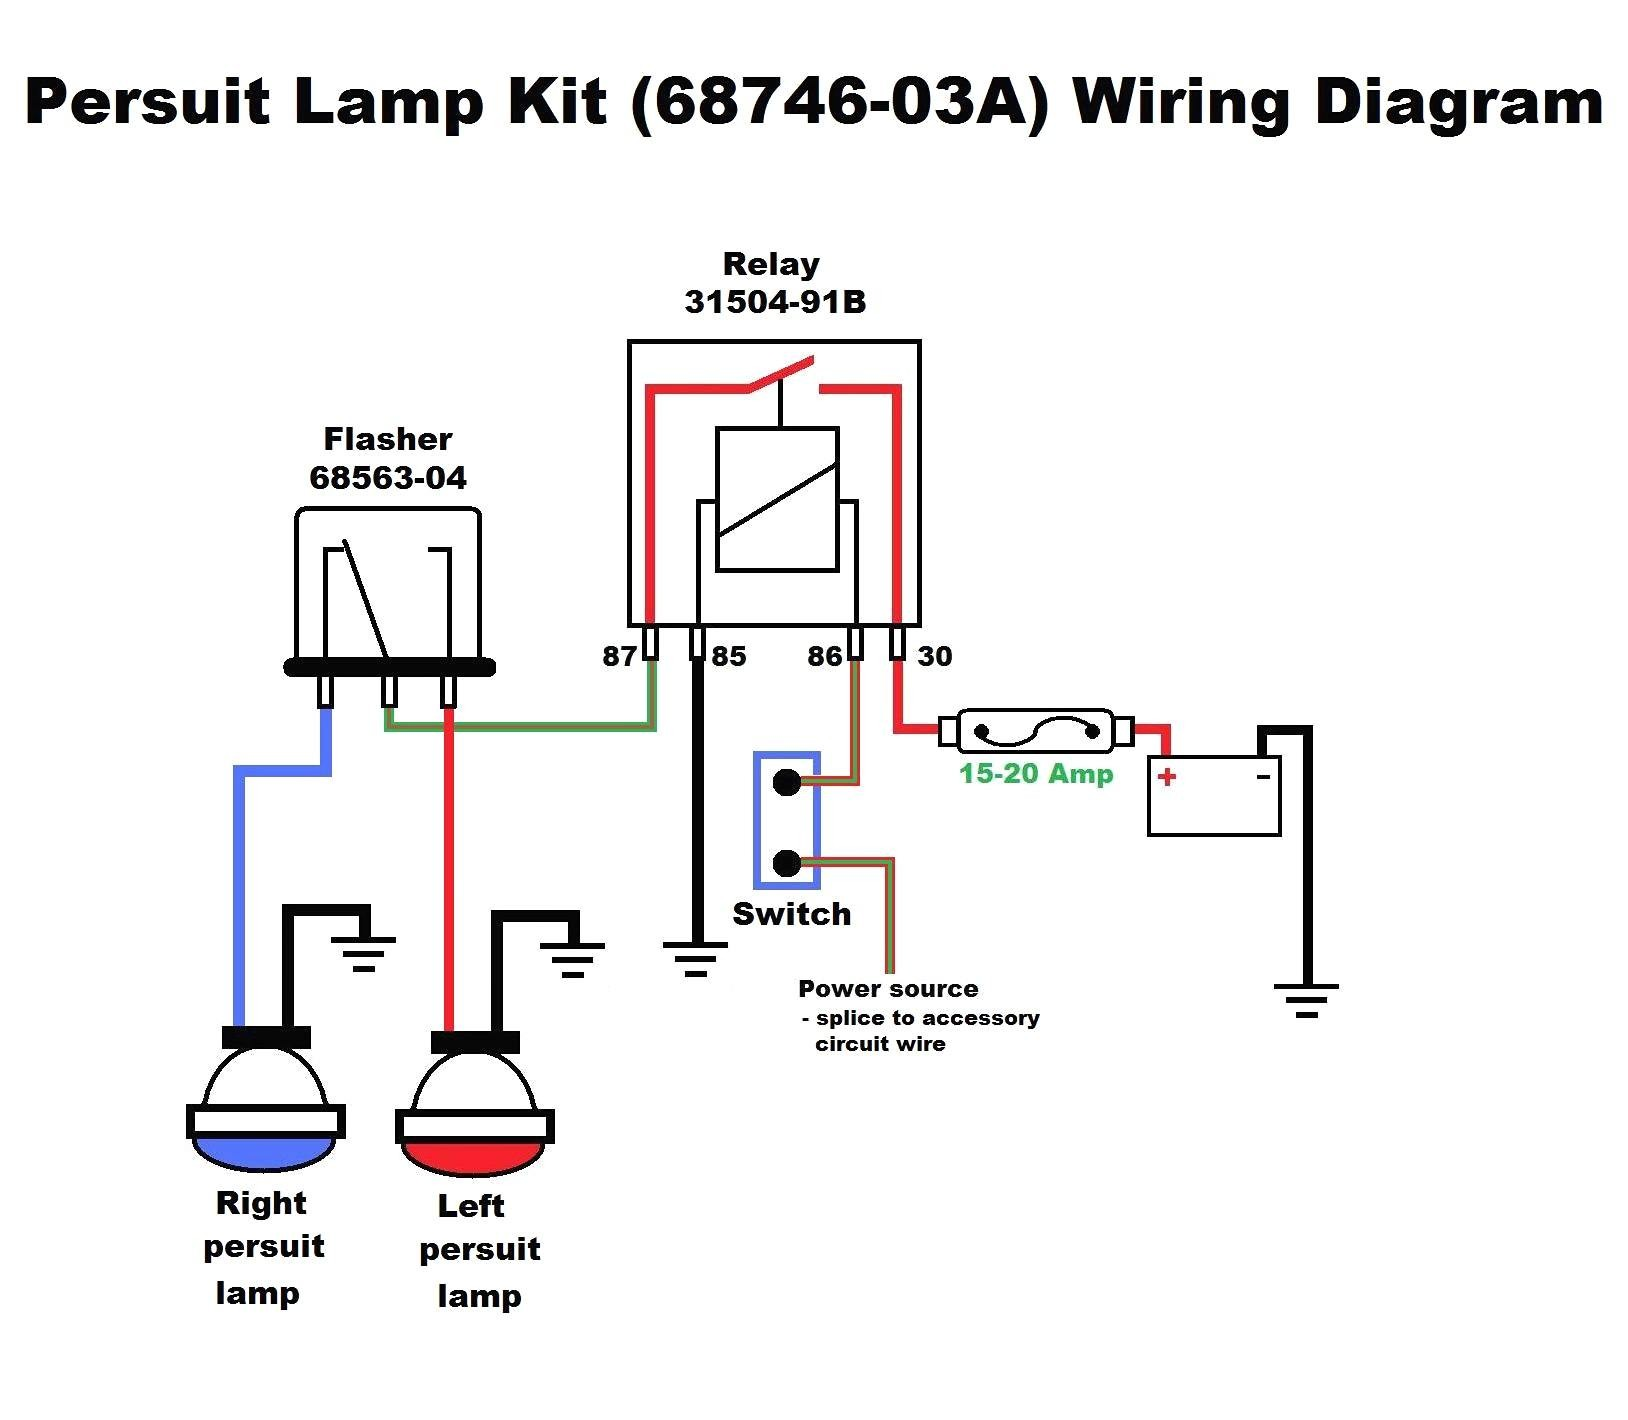 Flasher Relay Wiring Diagram Simple 12v Horn Wiring Diagram Readingrat Net within Flasher Relay Of Flasher Relay Wiring Diagram